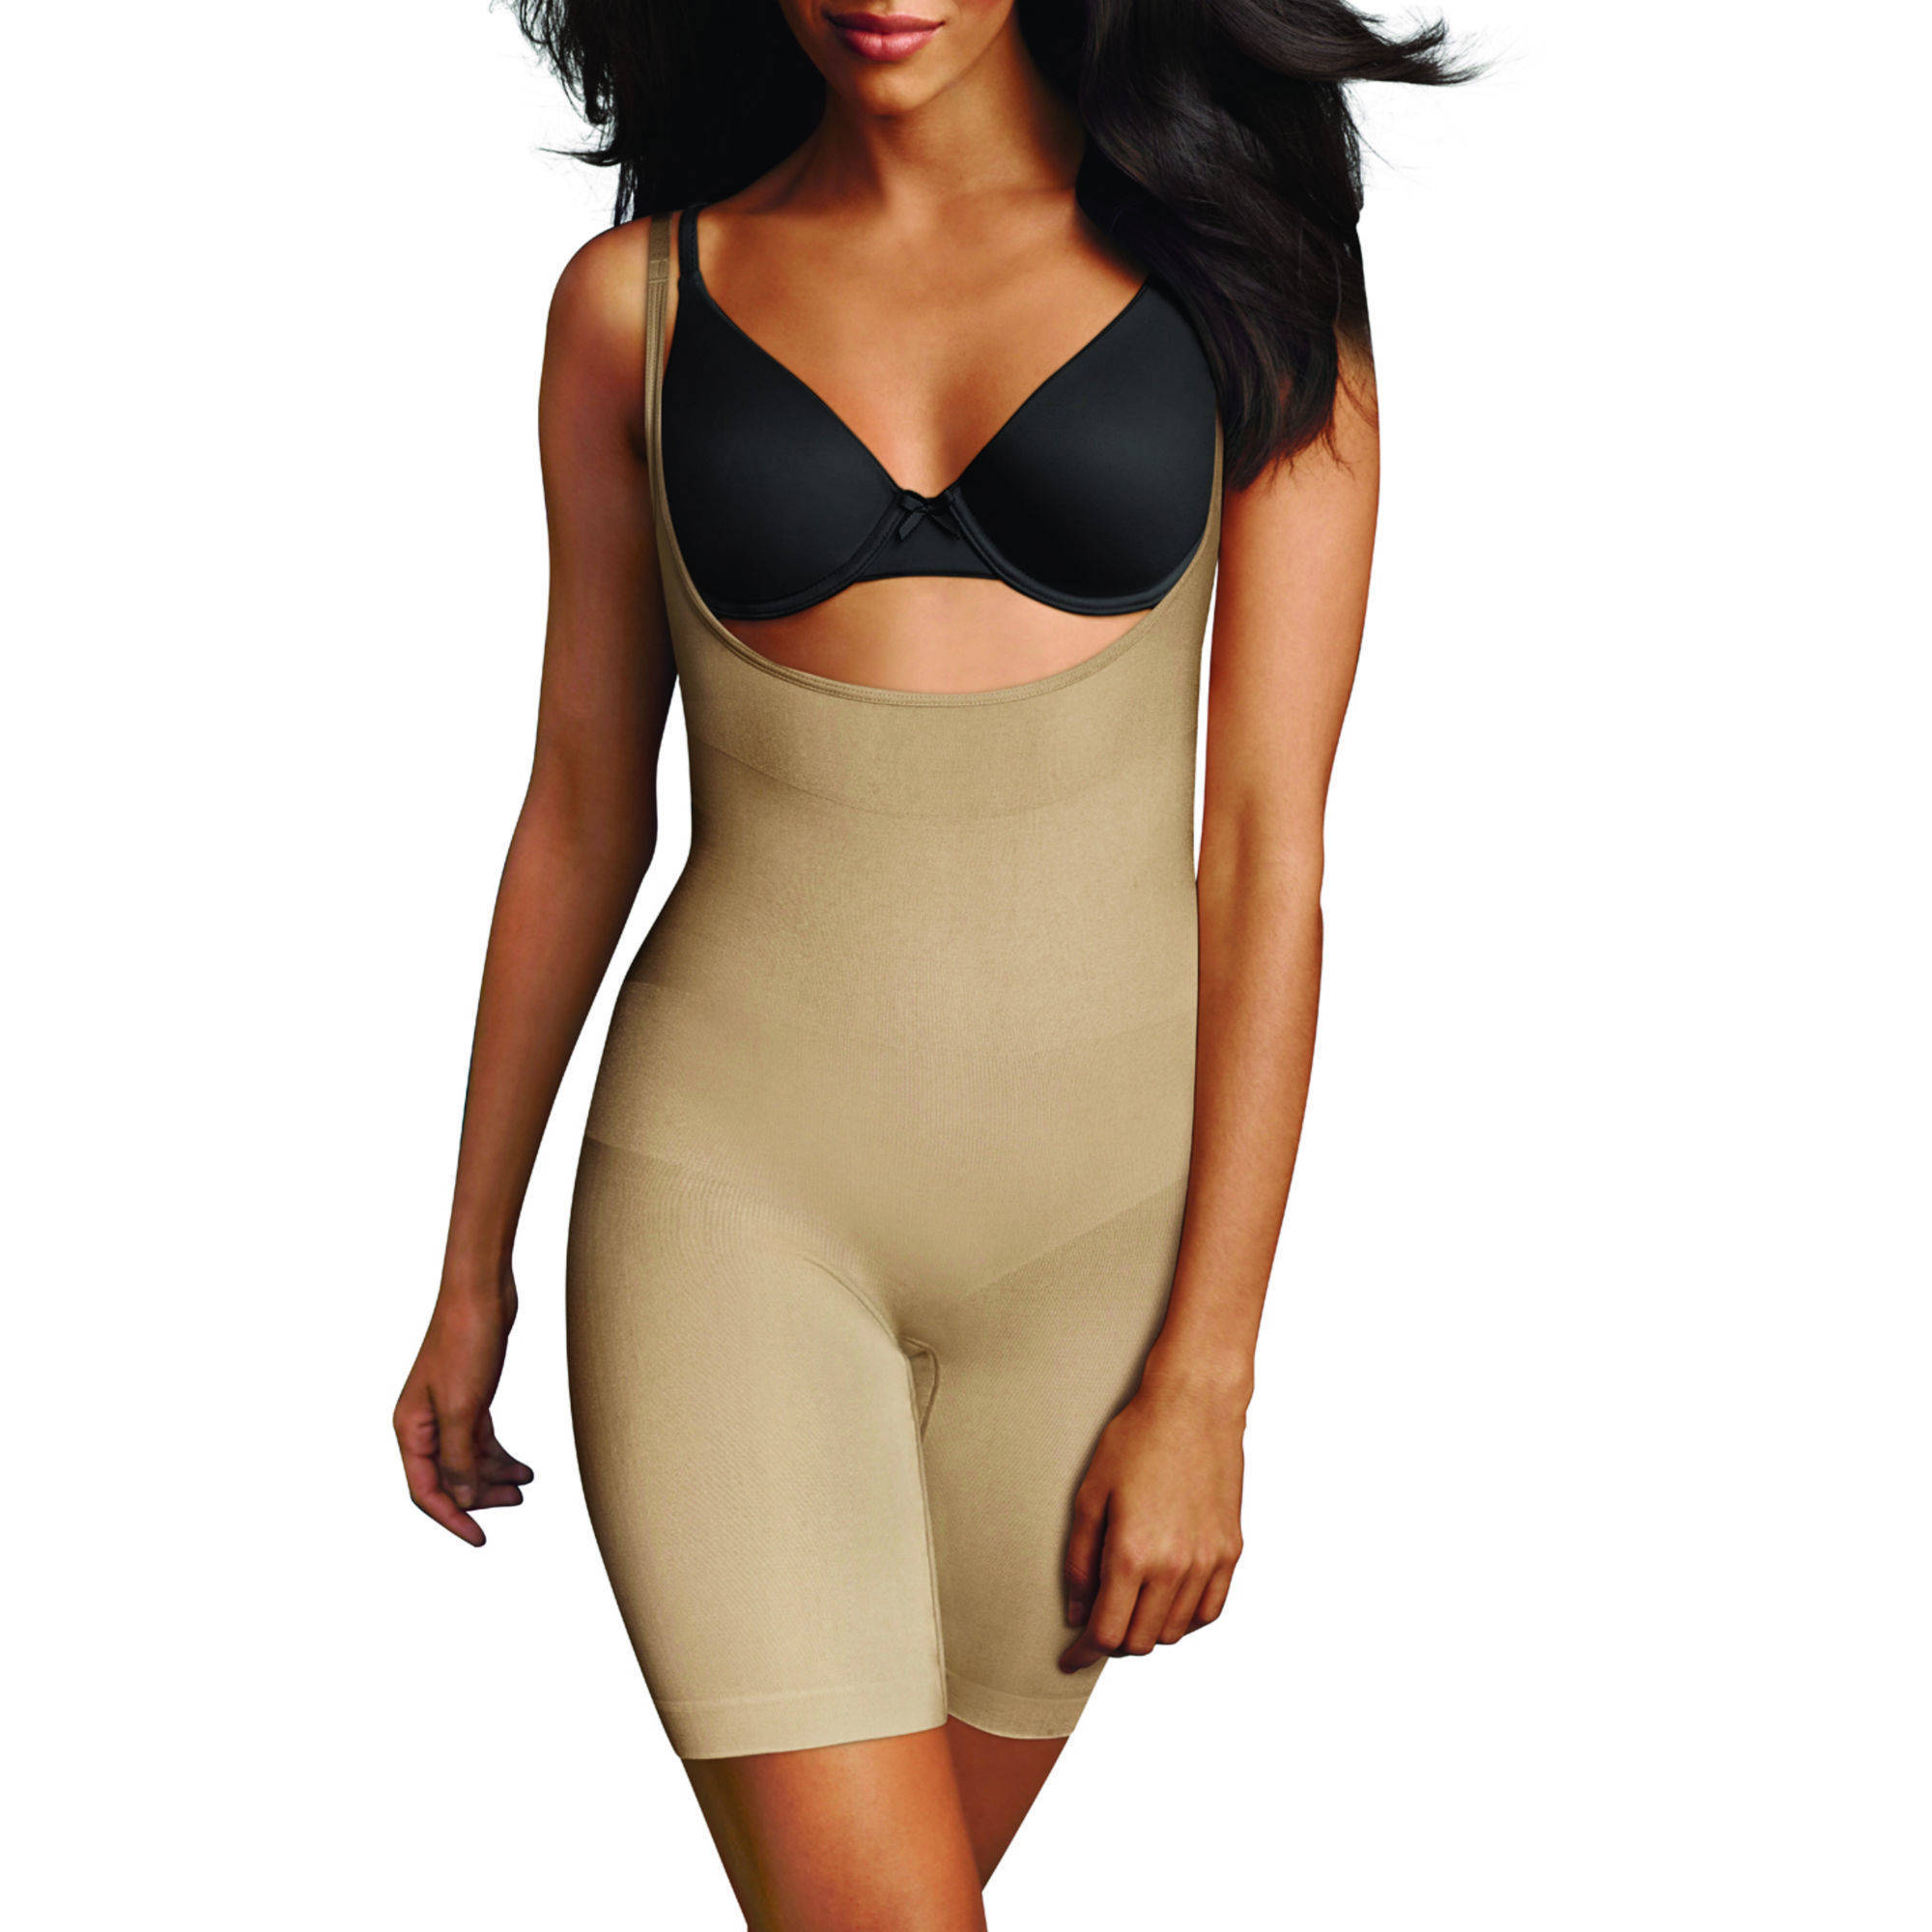 FLEXEES by Maidenform Wear Your Own Bra Seamless Shaping Singlet, 82466, Ultra Firm Control Shapewear